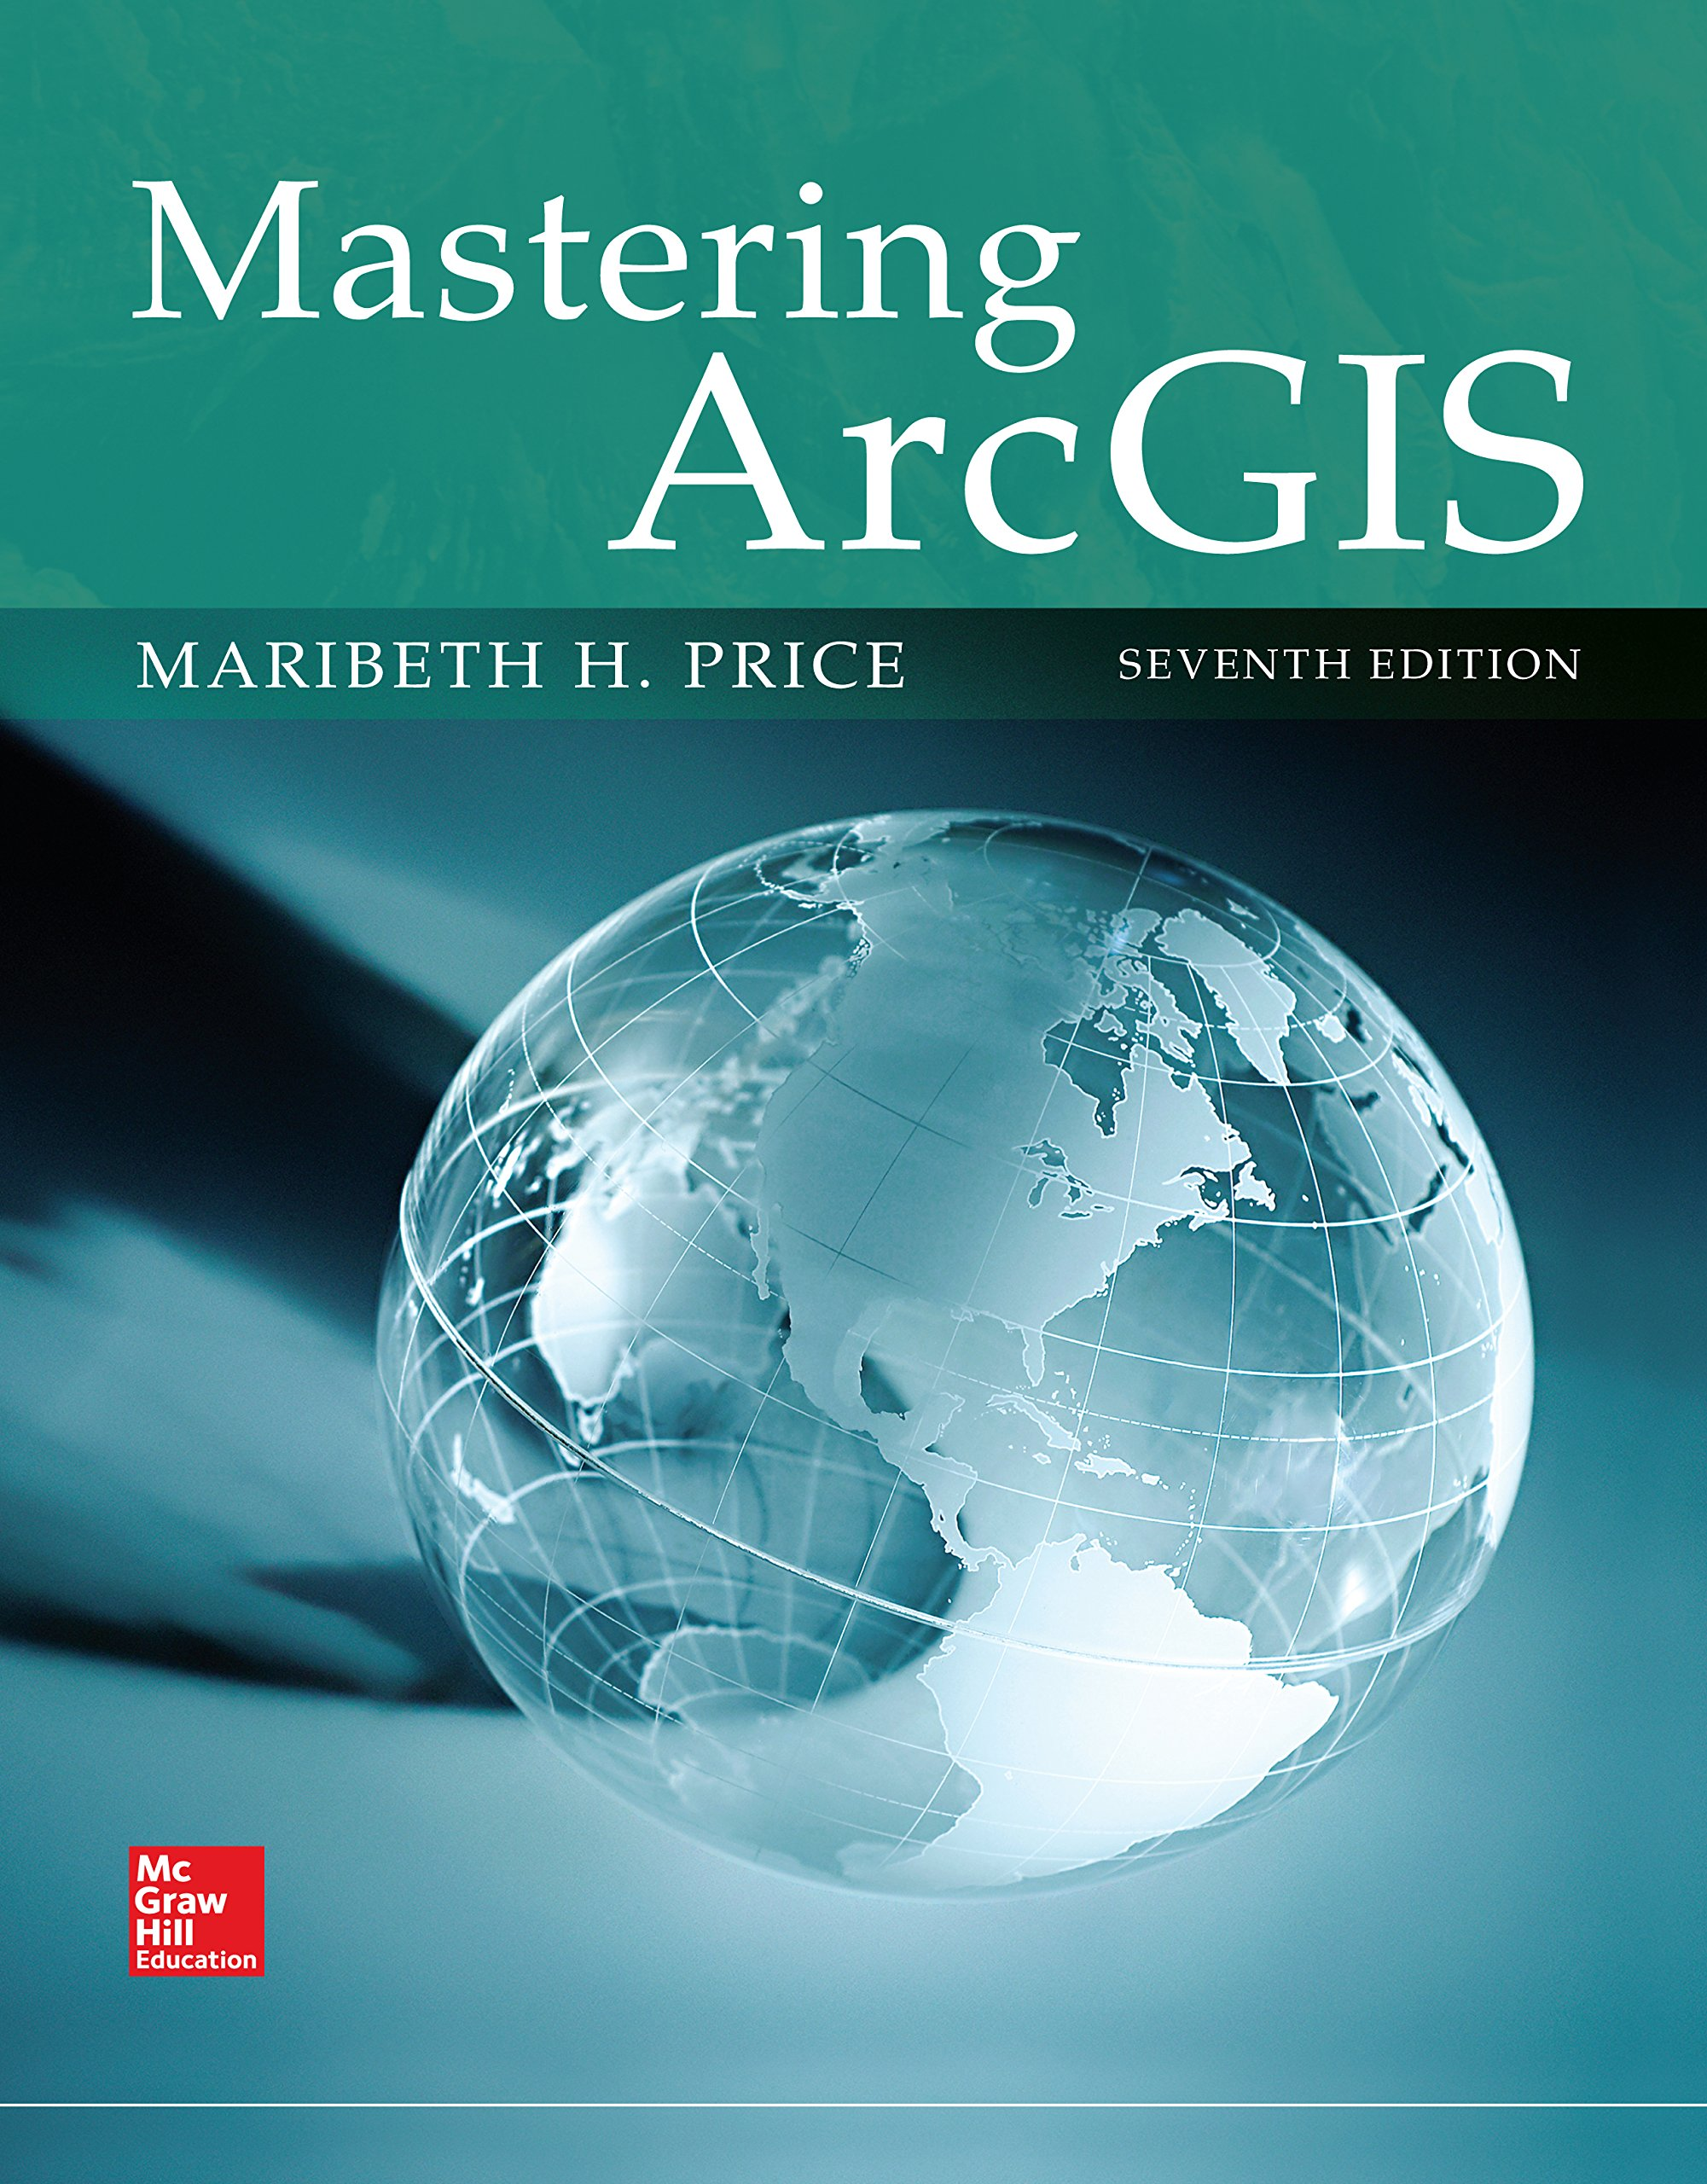 Mastering Arcgis 7th Edition Pdf